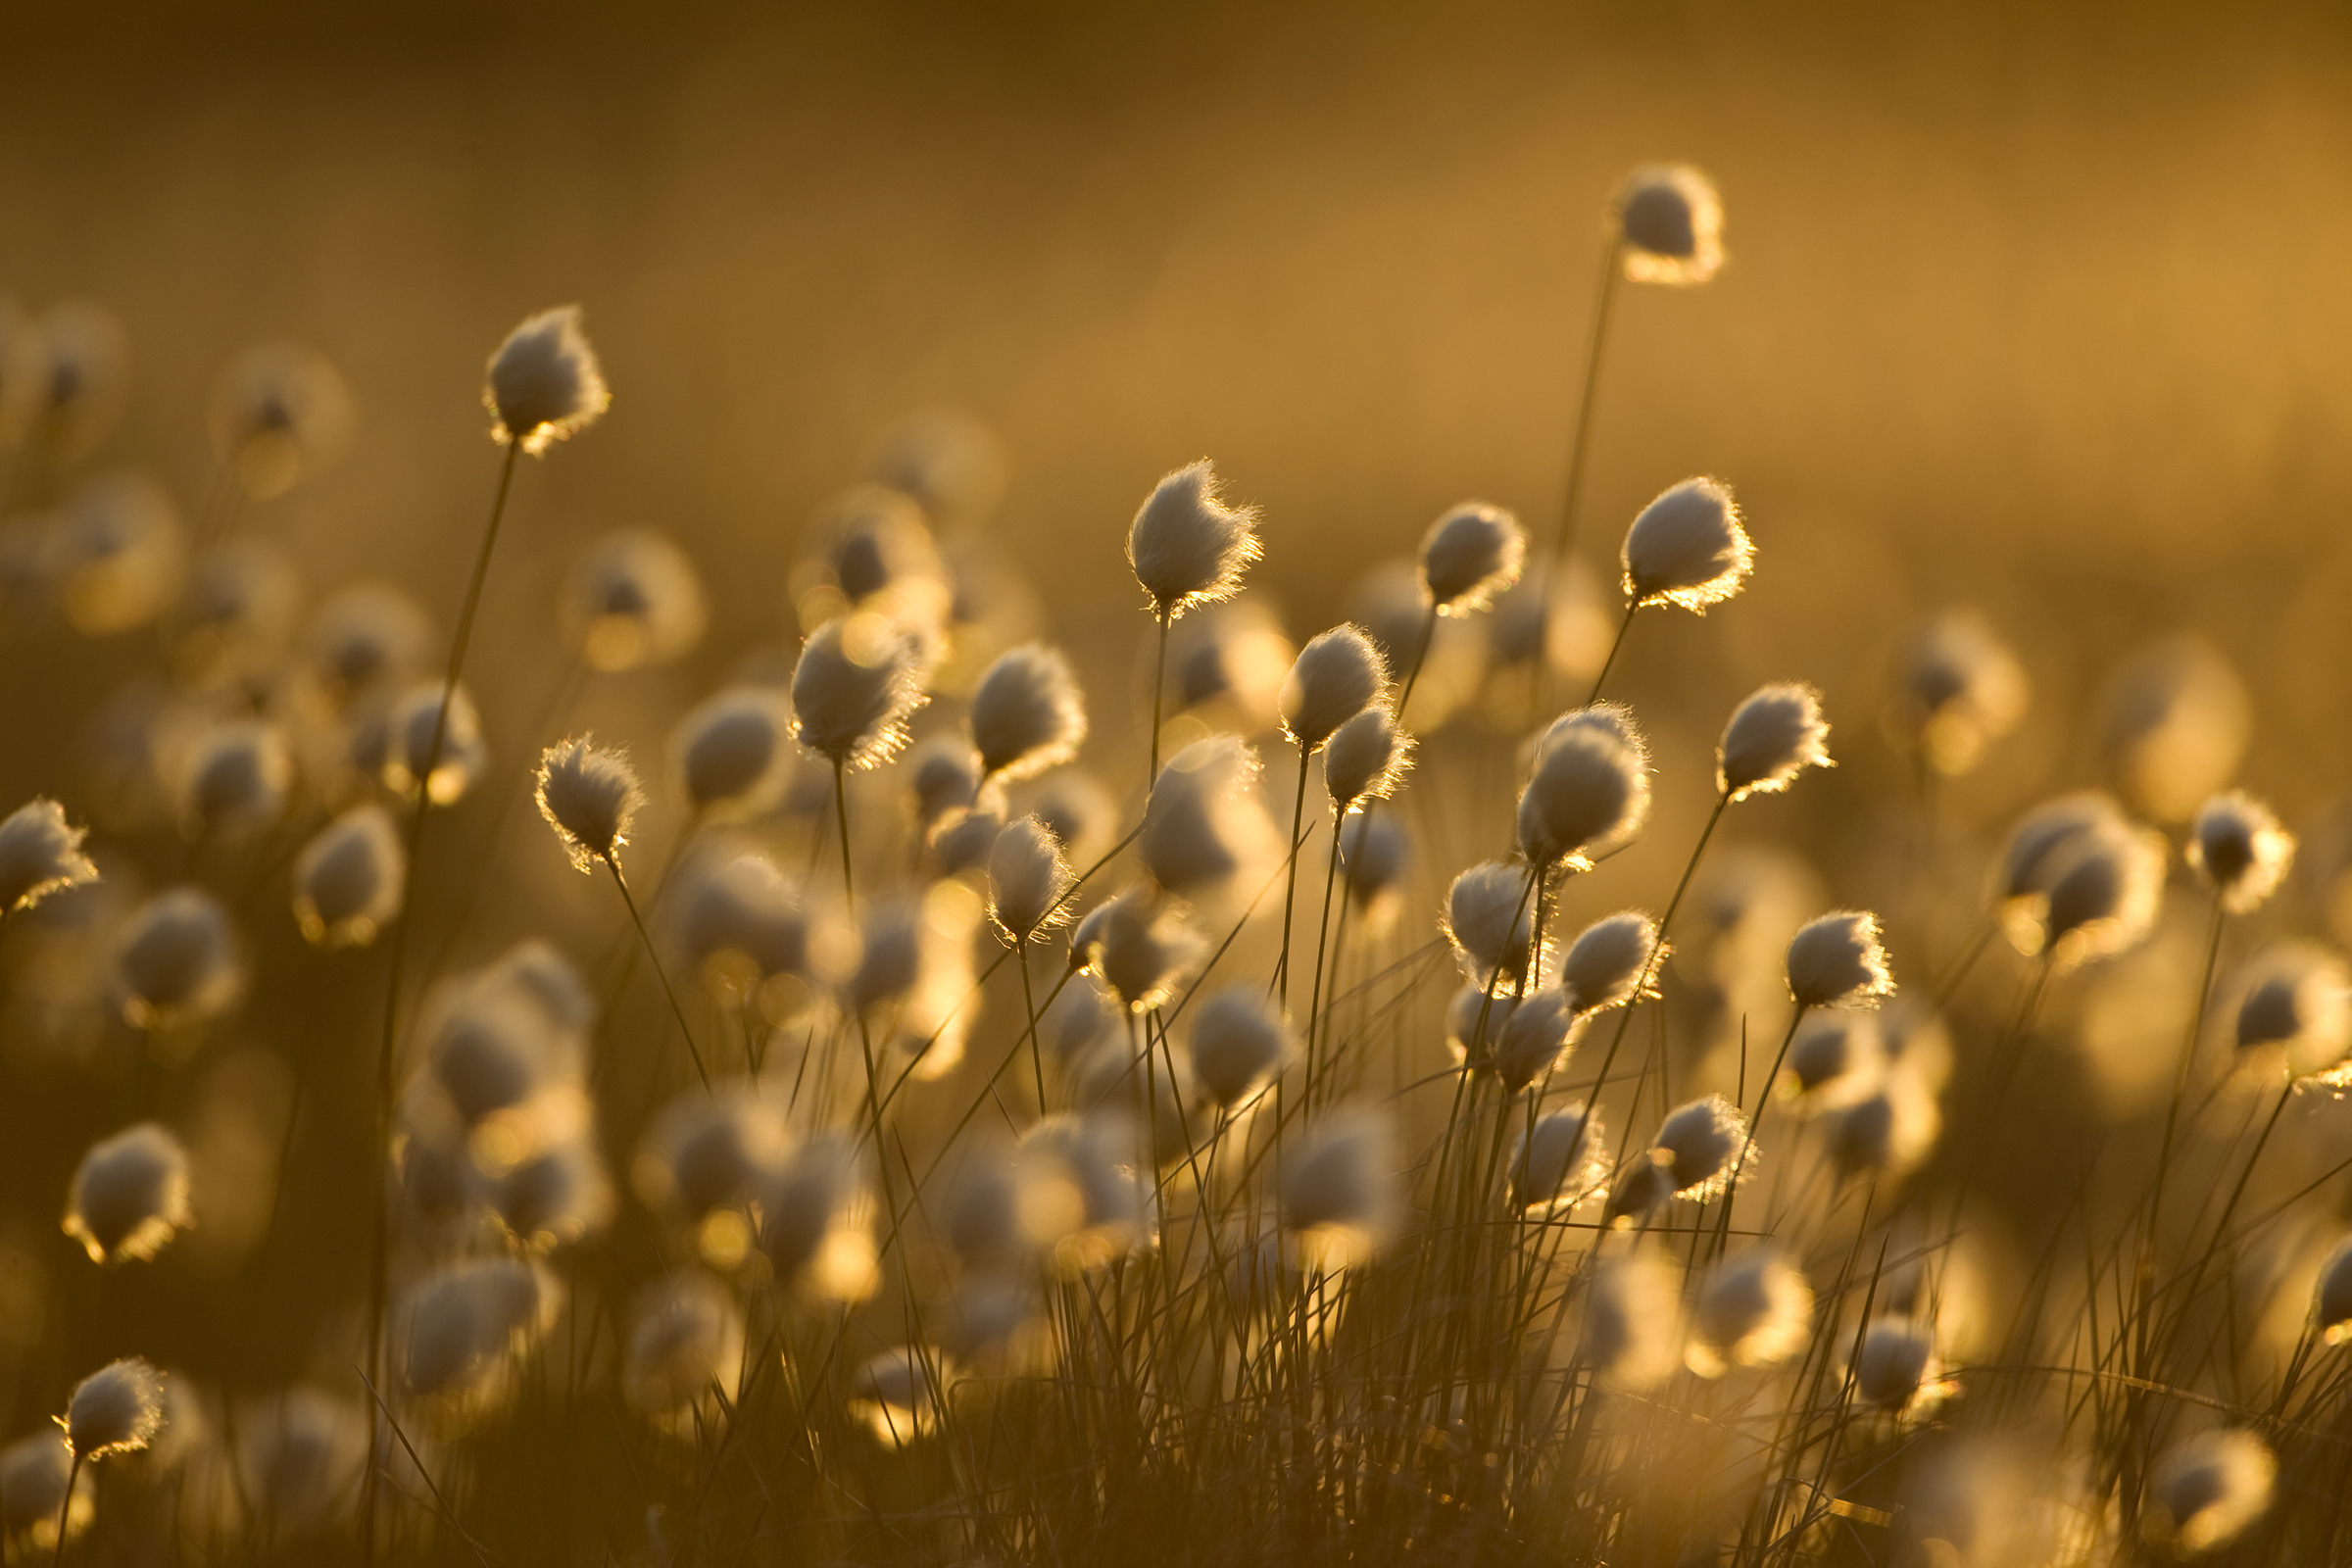 A crop of harestail cotton-grass practically glows in Scotland's late-evening light.